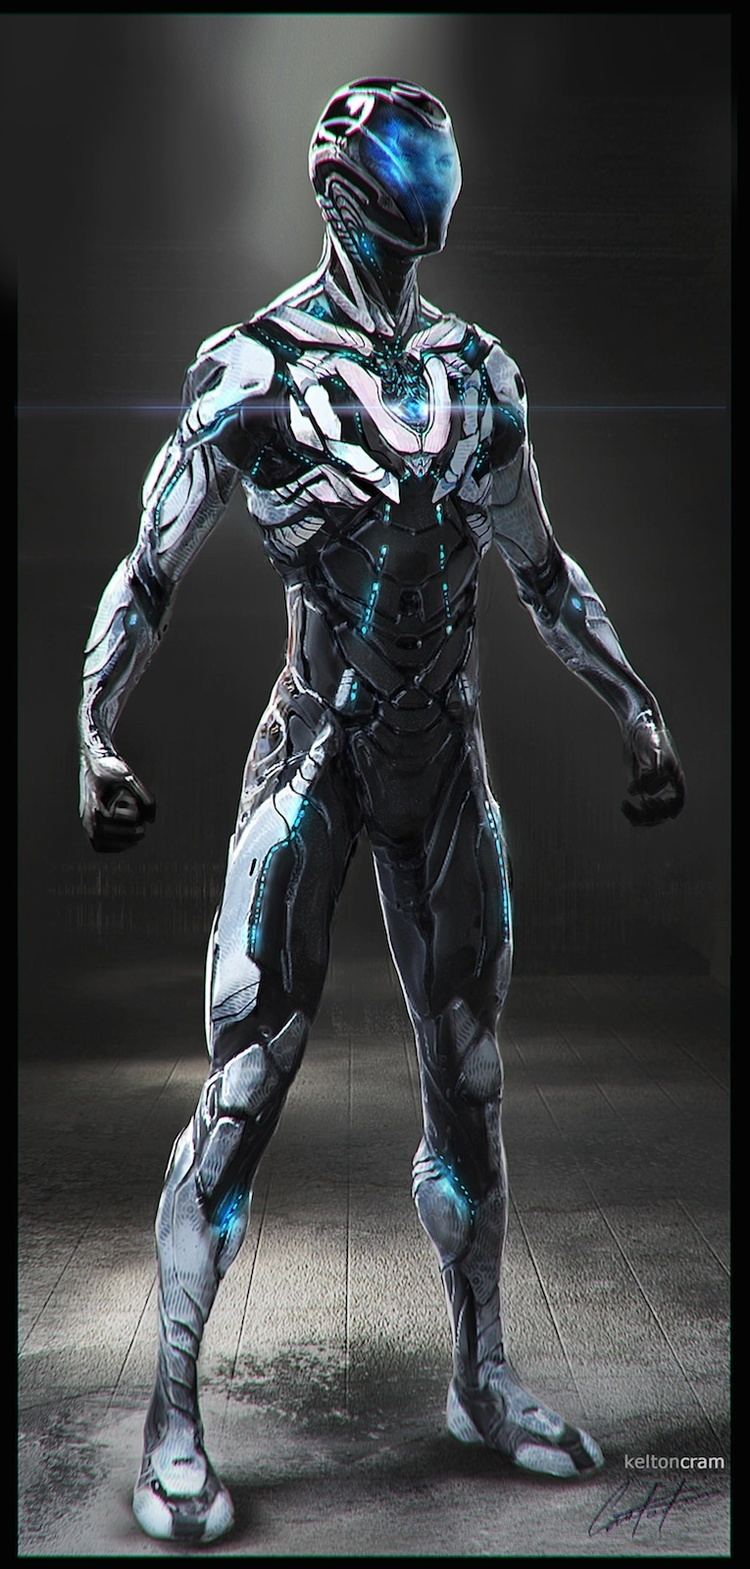 Max Steel (film) Max Steel Trailer Tron Meets Iron Man in the ToyBased Movie Collider